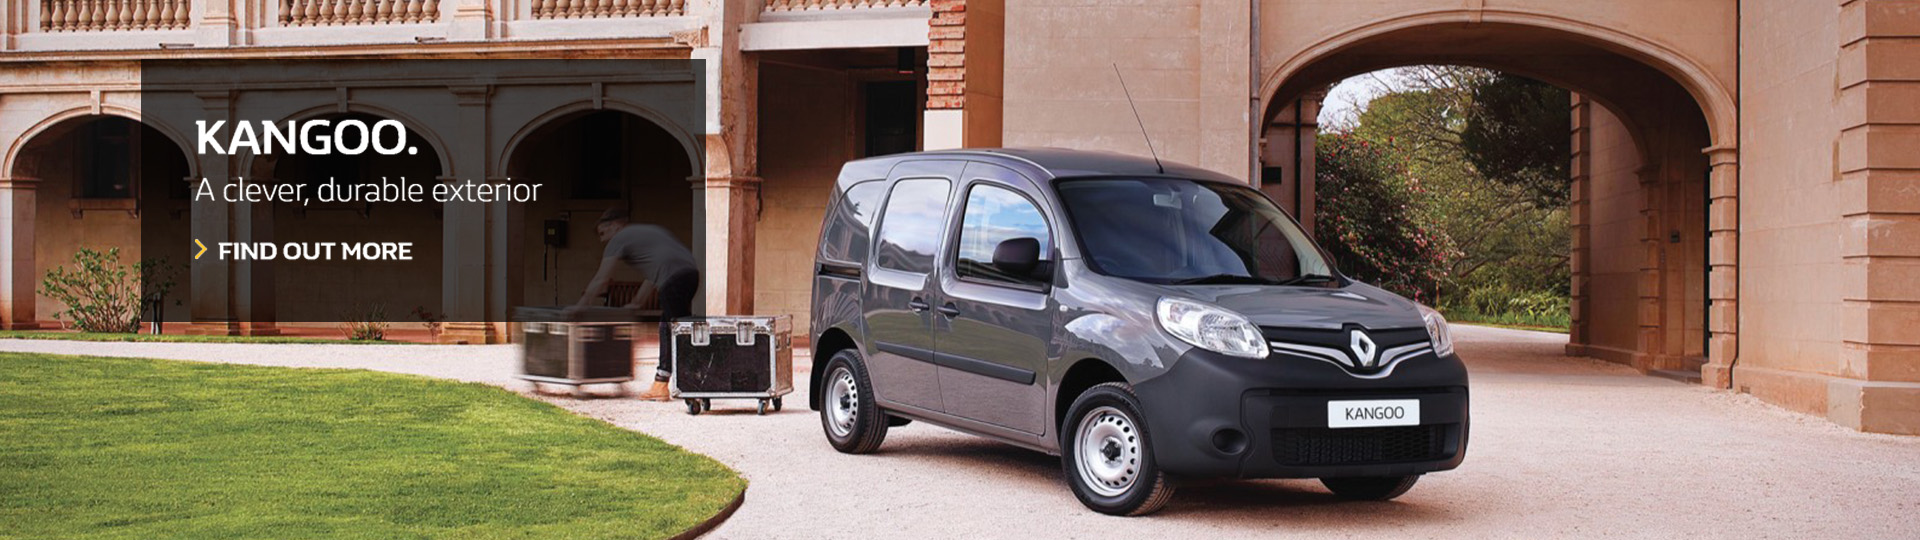 Renault Kangoo - A clever, durable exterior